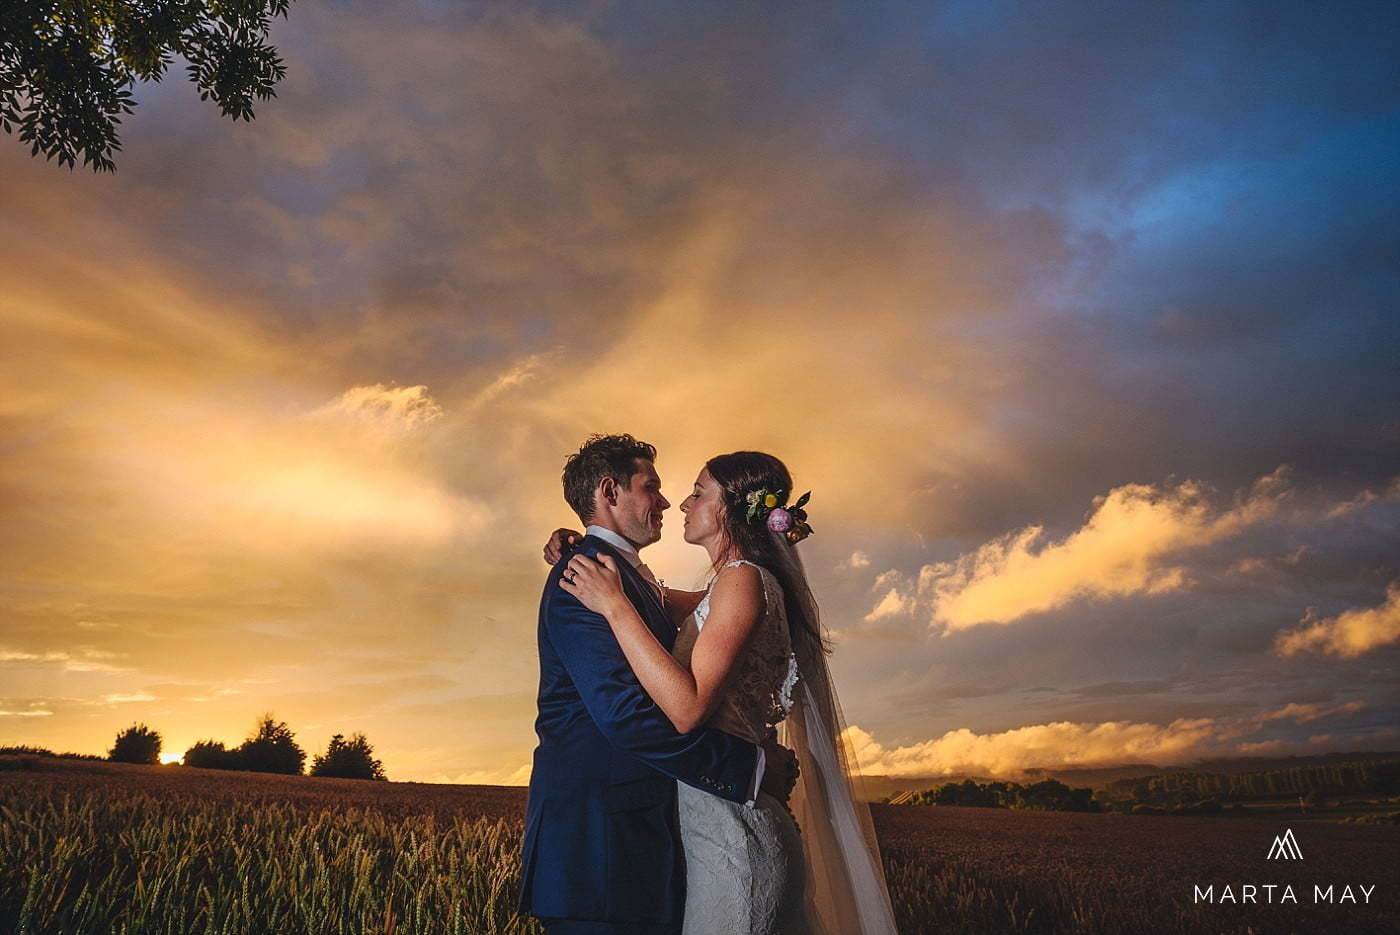 Lyde court couple